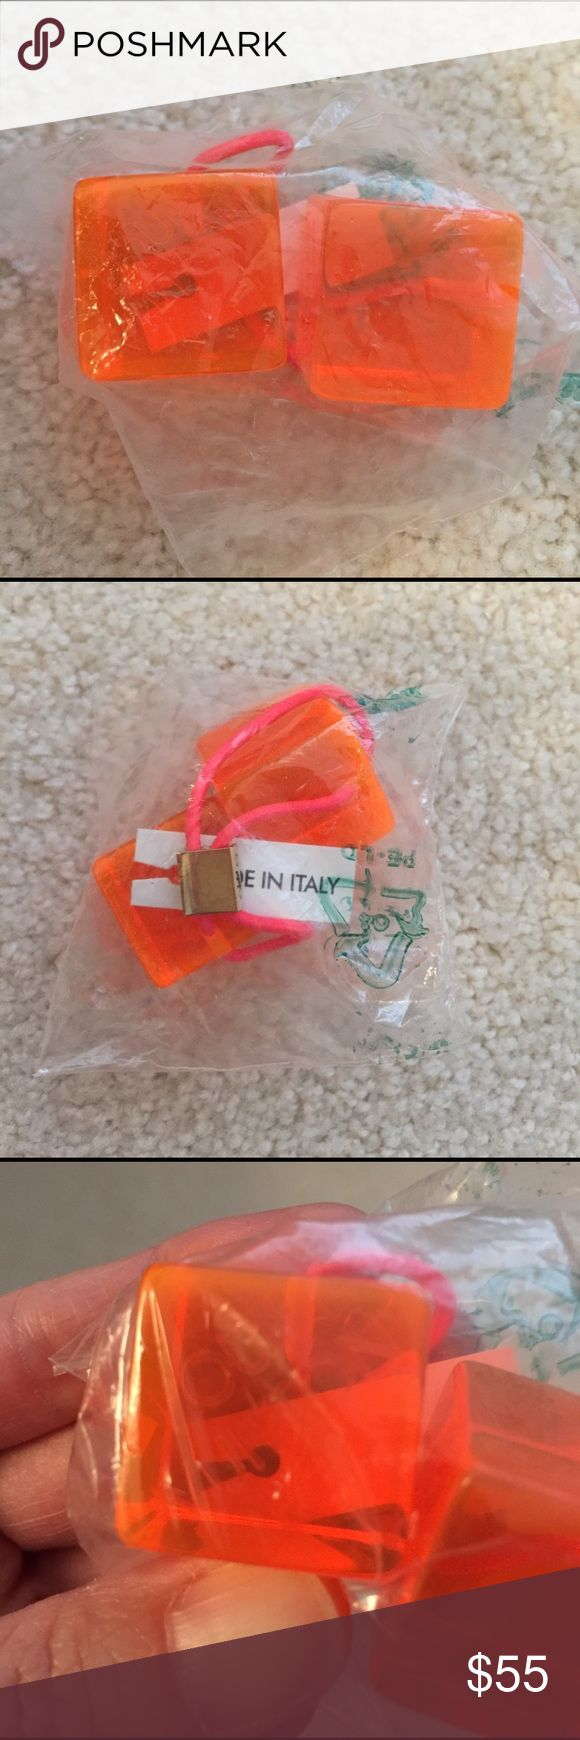 100% Authentic Louis Vuitton Hair Cube 100% Authentic Louis Vuitton Hair Cube Florescent Orange with Bright Pink Elastic, Gold Hardware. BRAND NEW! Still in original package, never opened. 1 hair Cube only. No box, no bag, as is. Hard to see but does have the Louis Vuitton Logo on the cube as well. Louis Vuitton Accessories